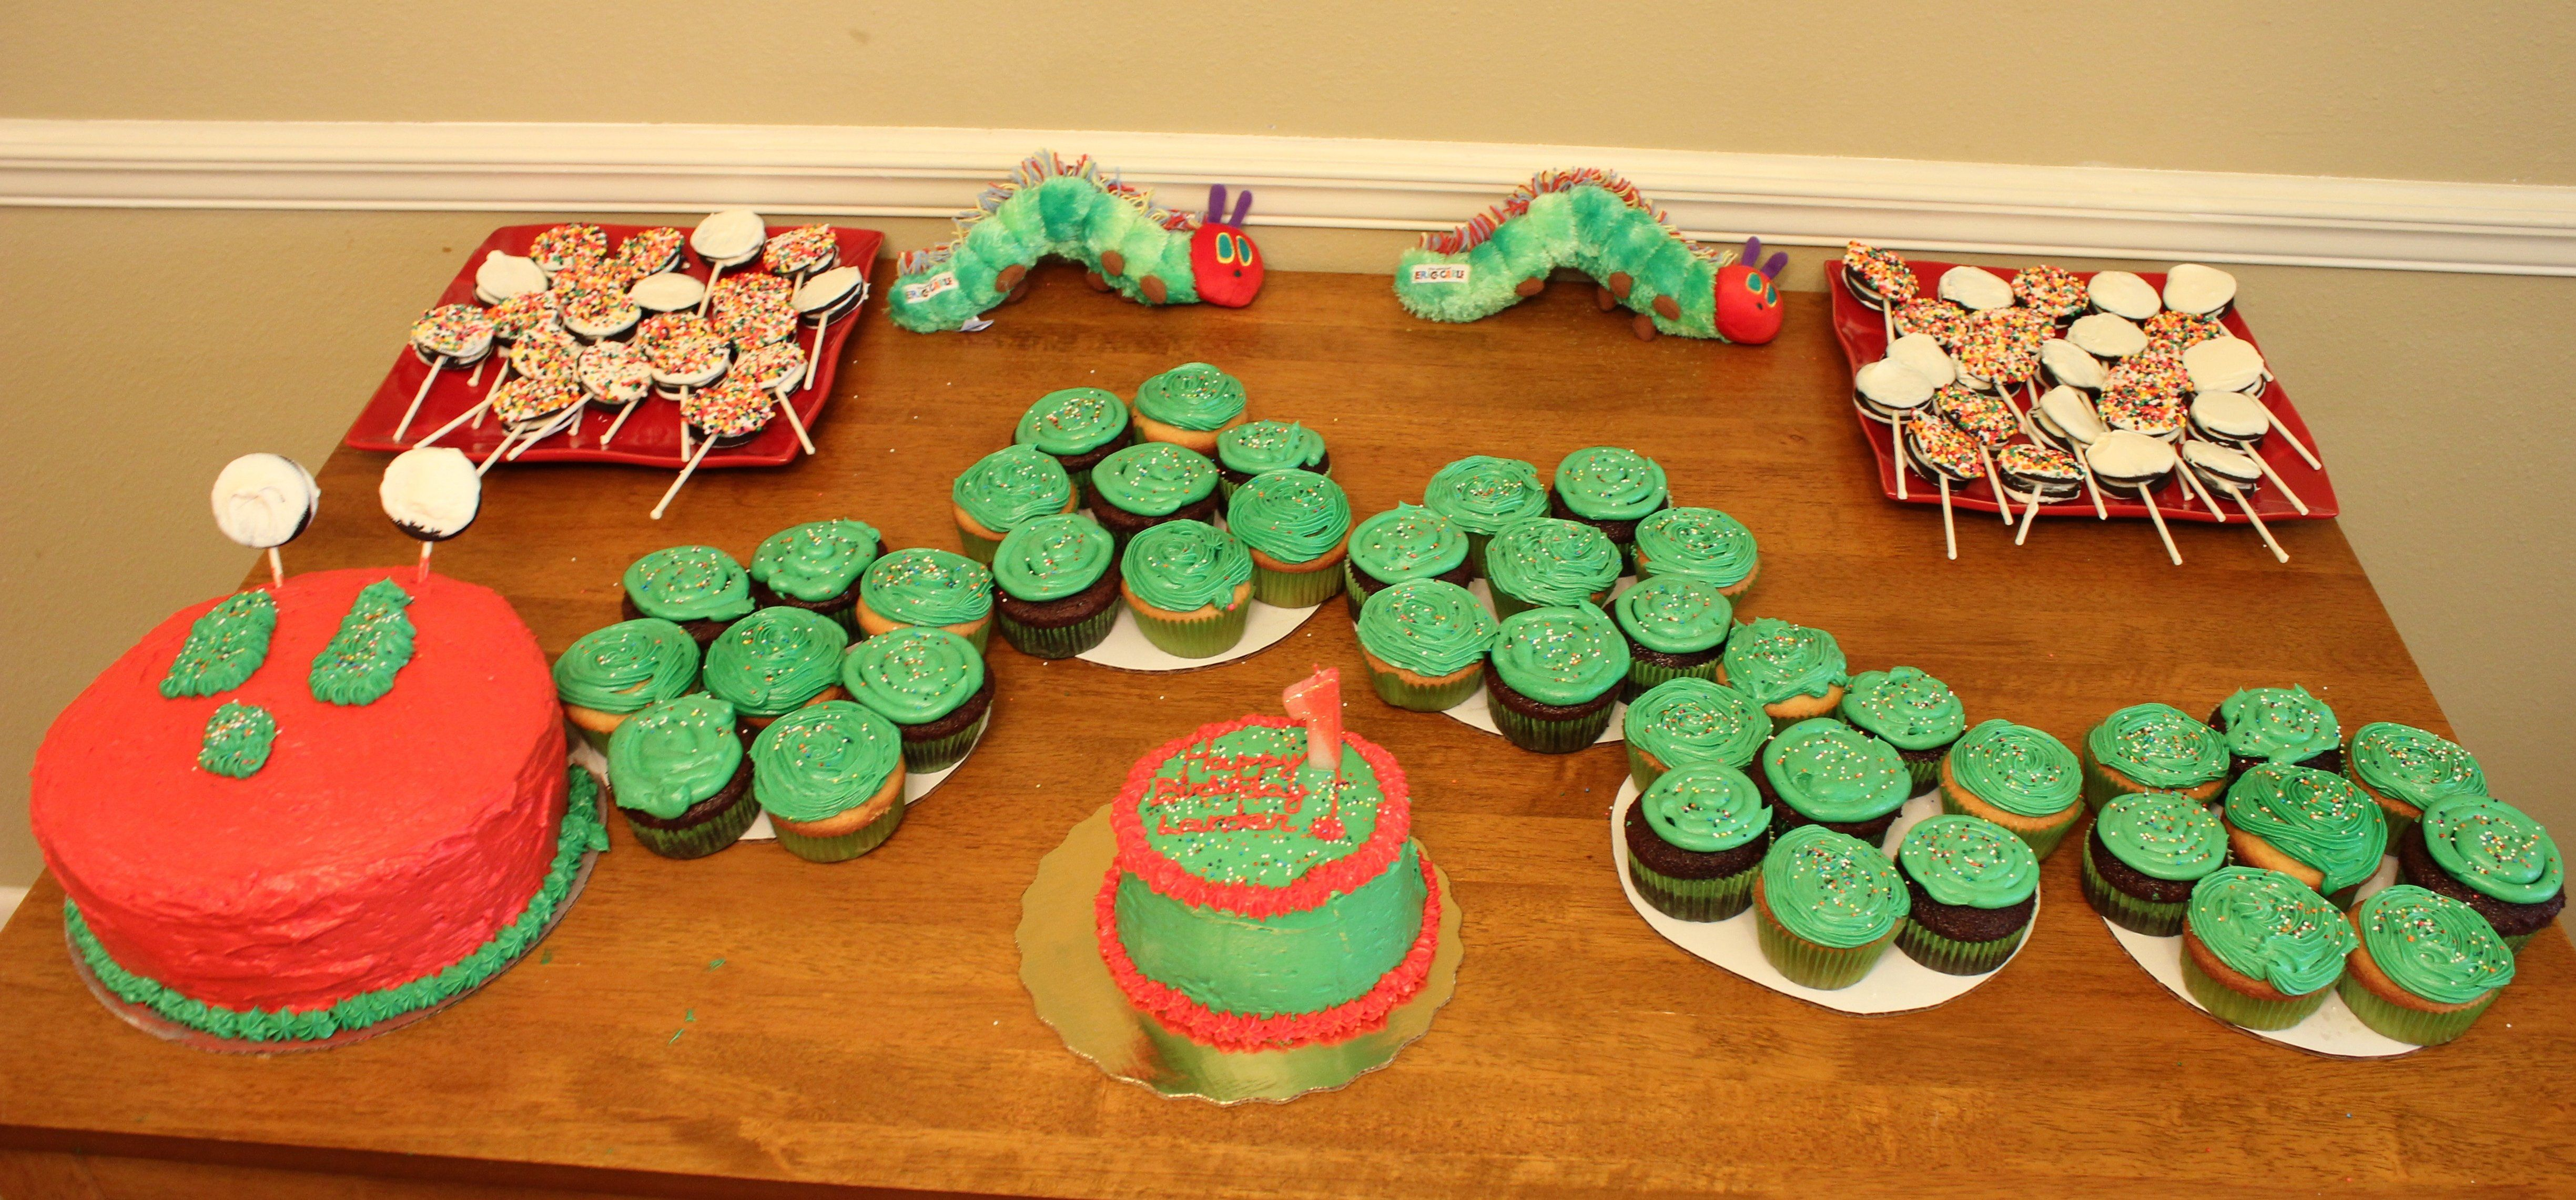 Landers Very Hungry Caterpillar 1st birthday set up So proud of